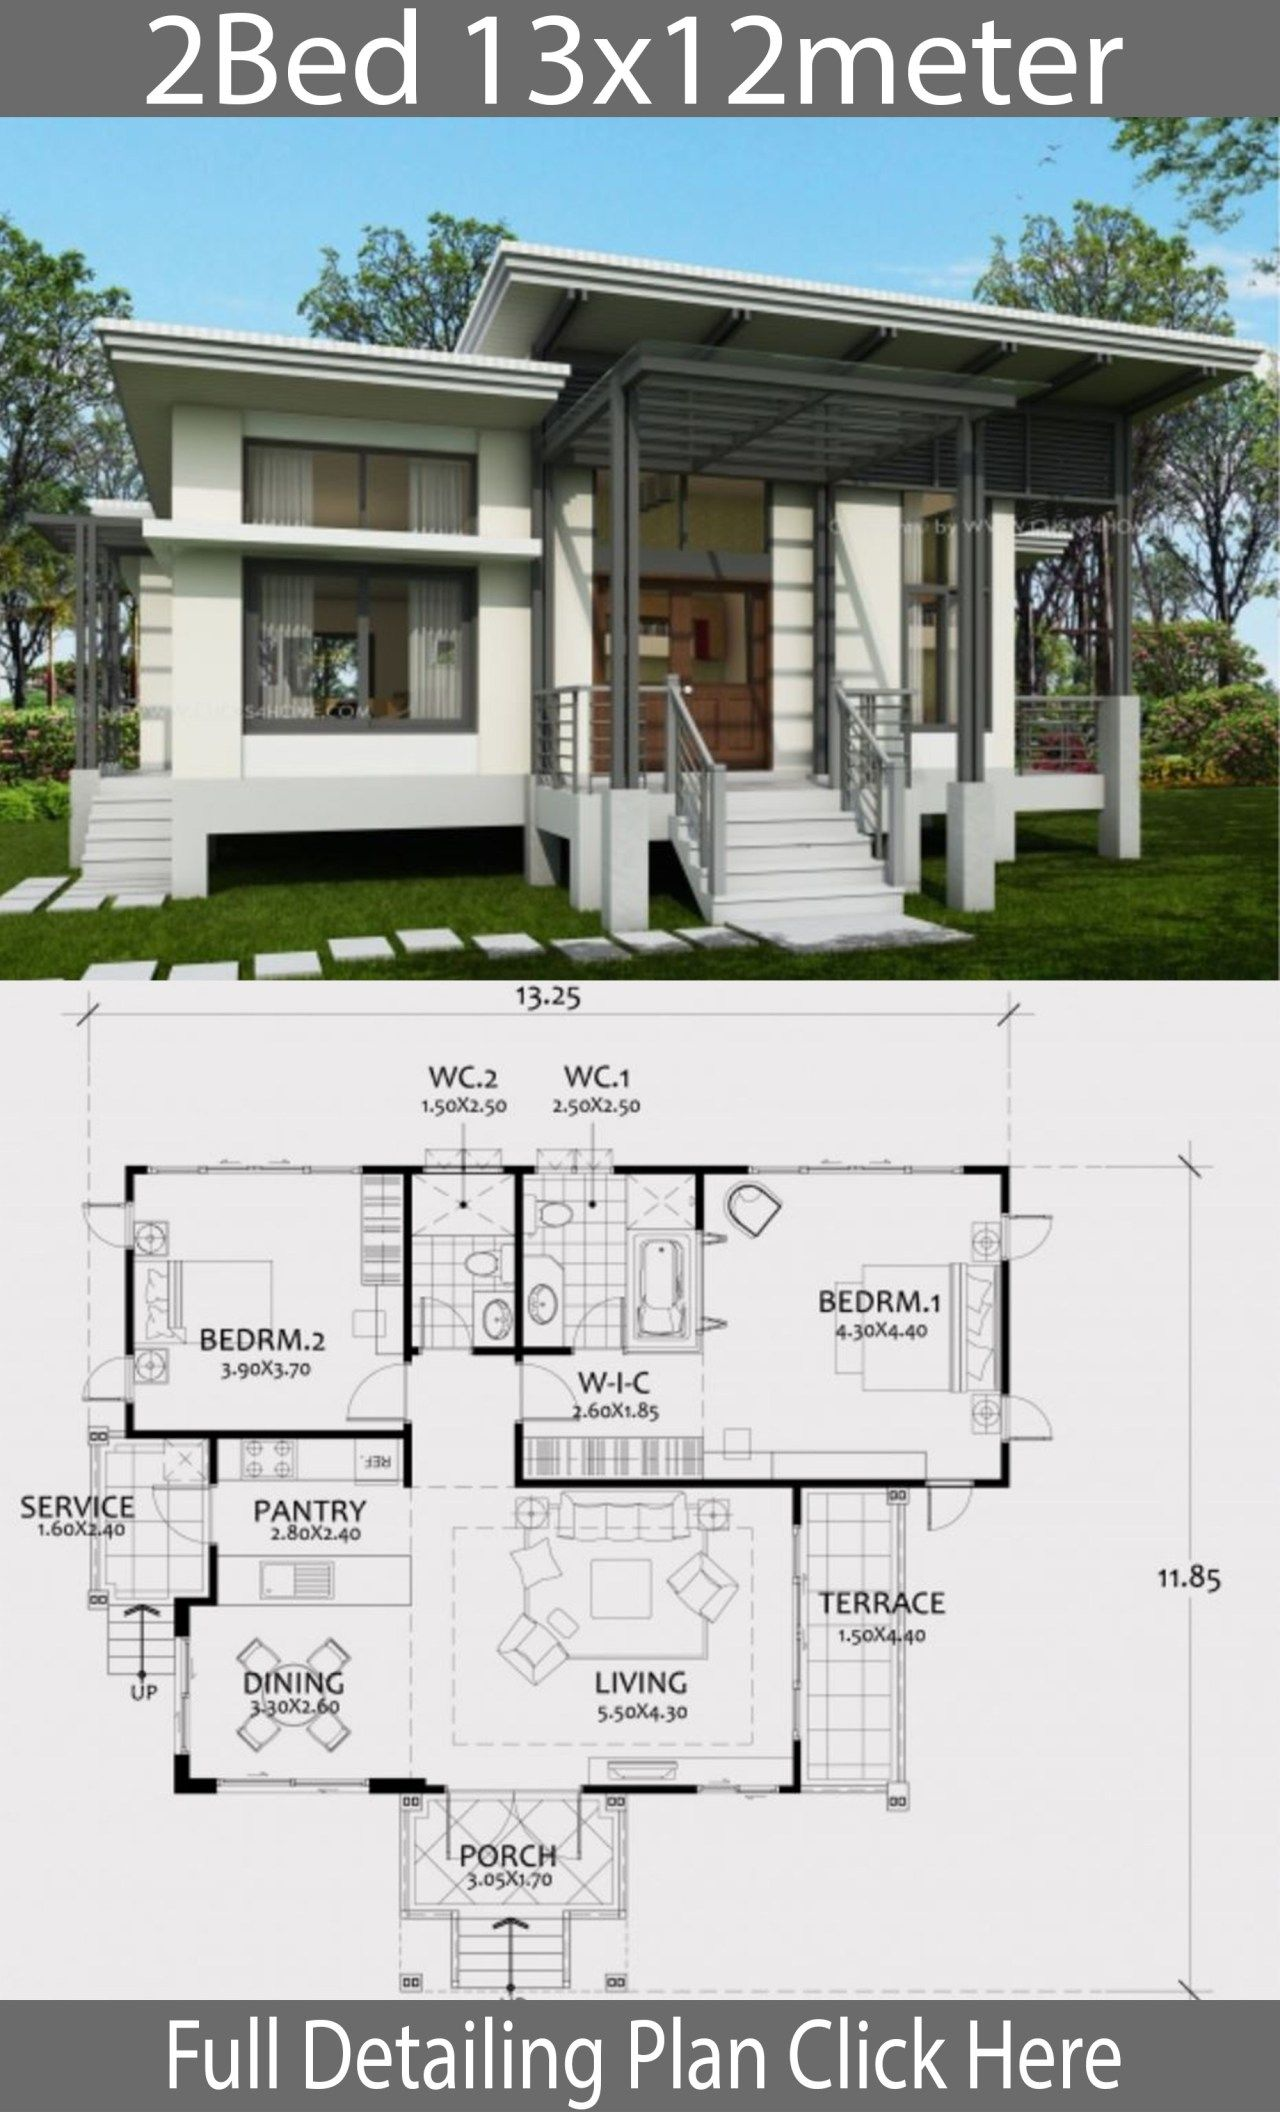 One Story House Plan 13x12m With 2 Bedrooms Home Ideas Brick Exterior House House Plans Story House